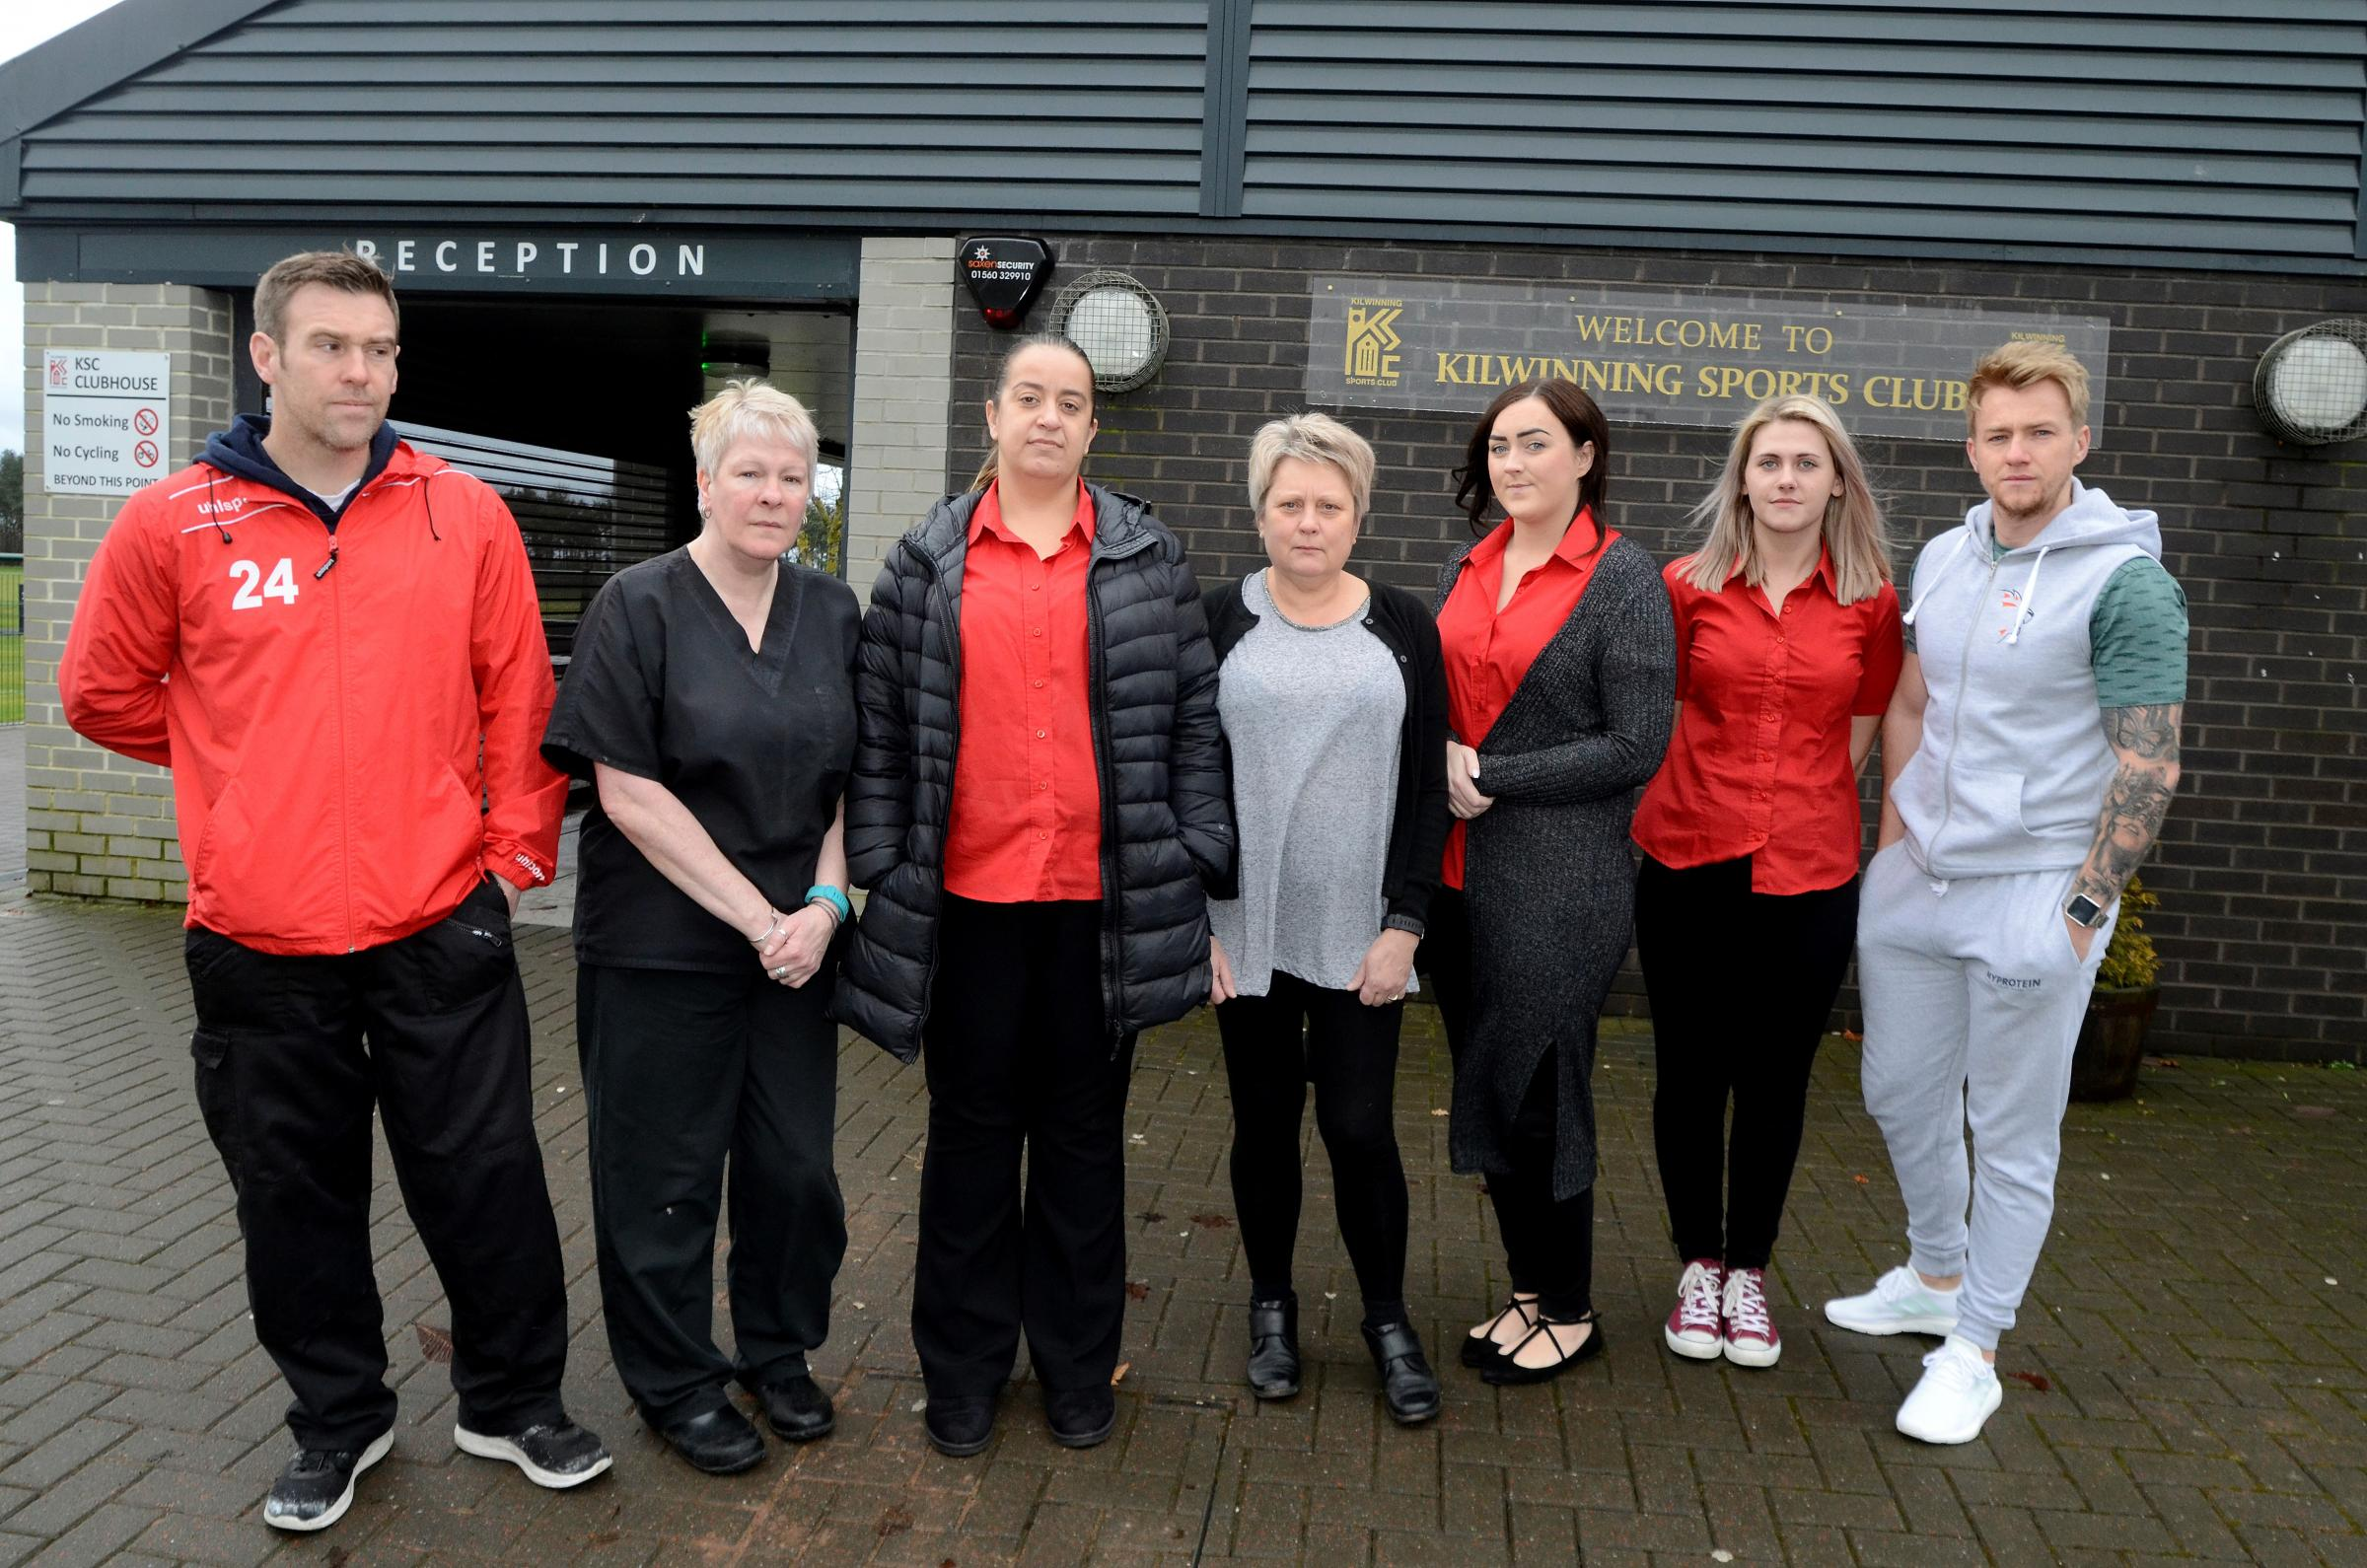 Kilwinning Sports Club facing closure following cash crisis